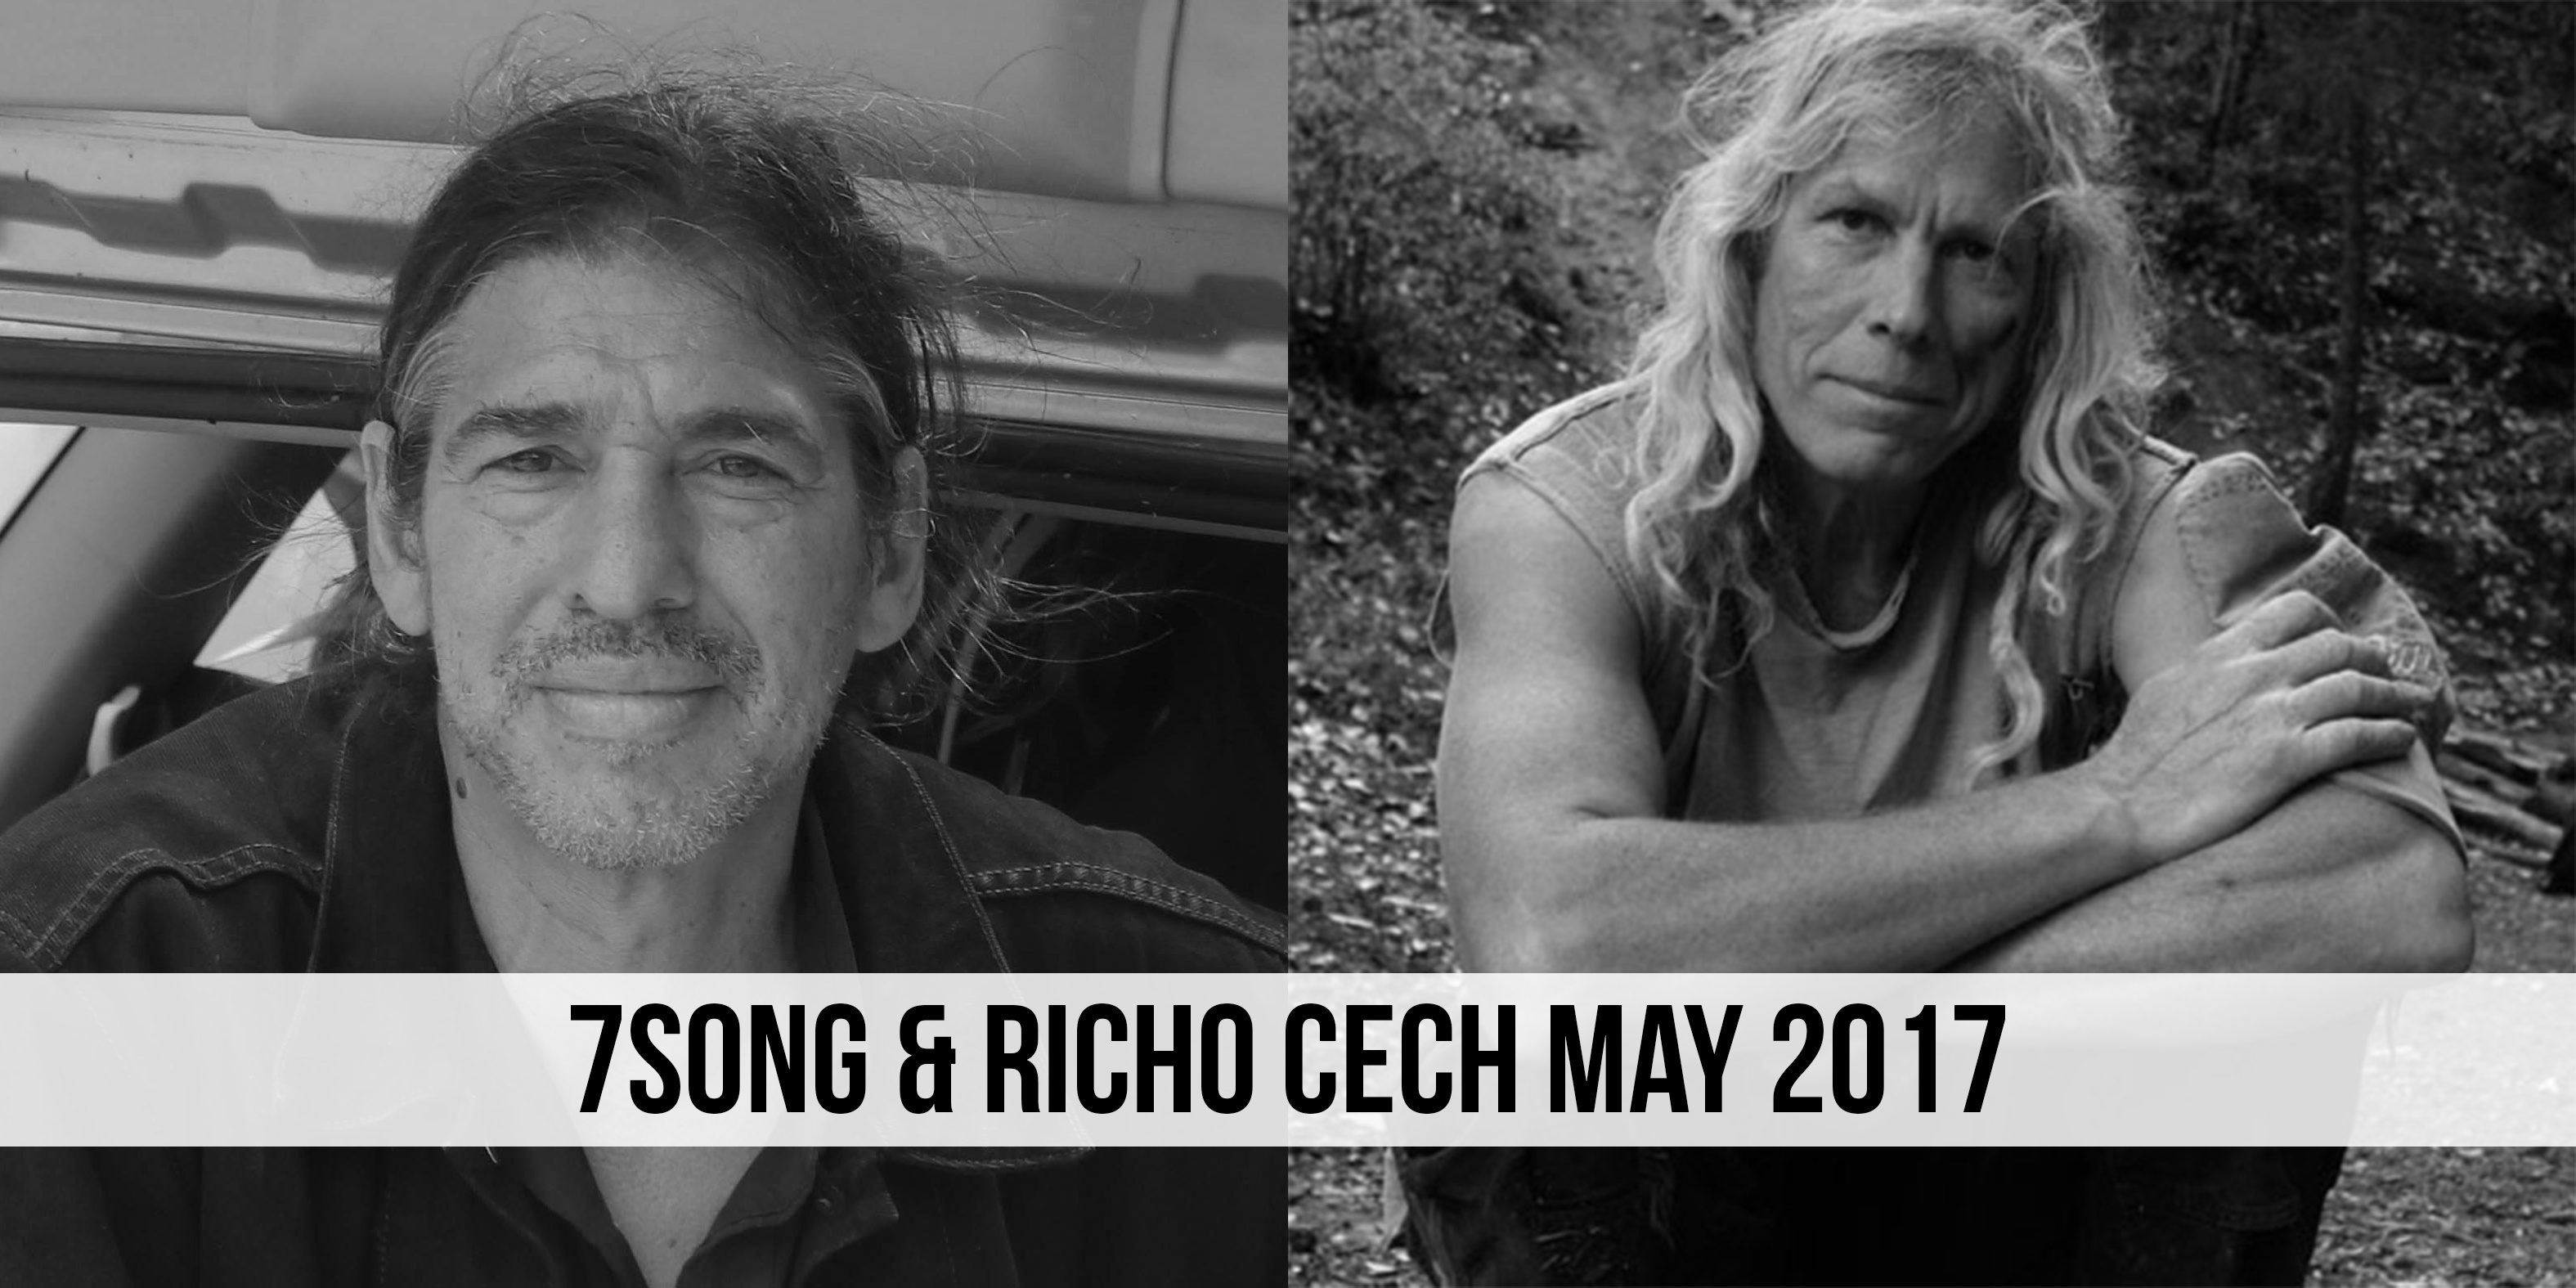 7Song & Richo Cech May 2017